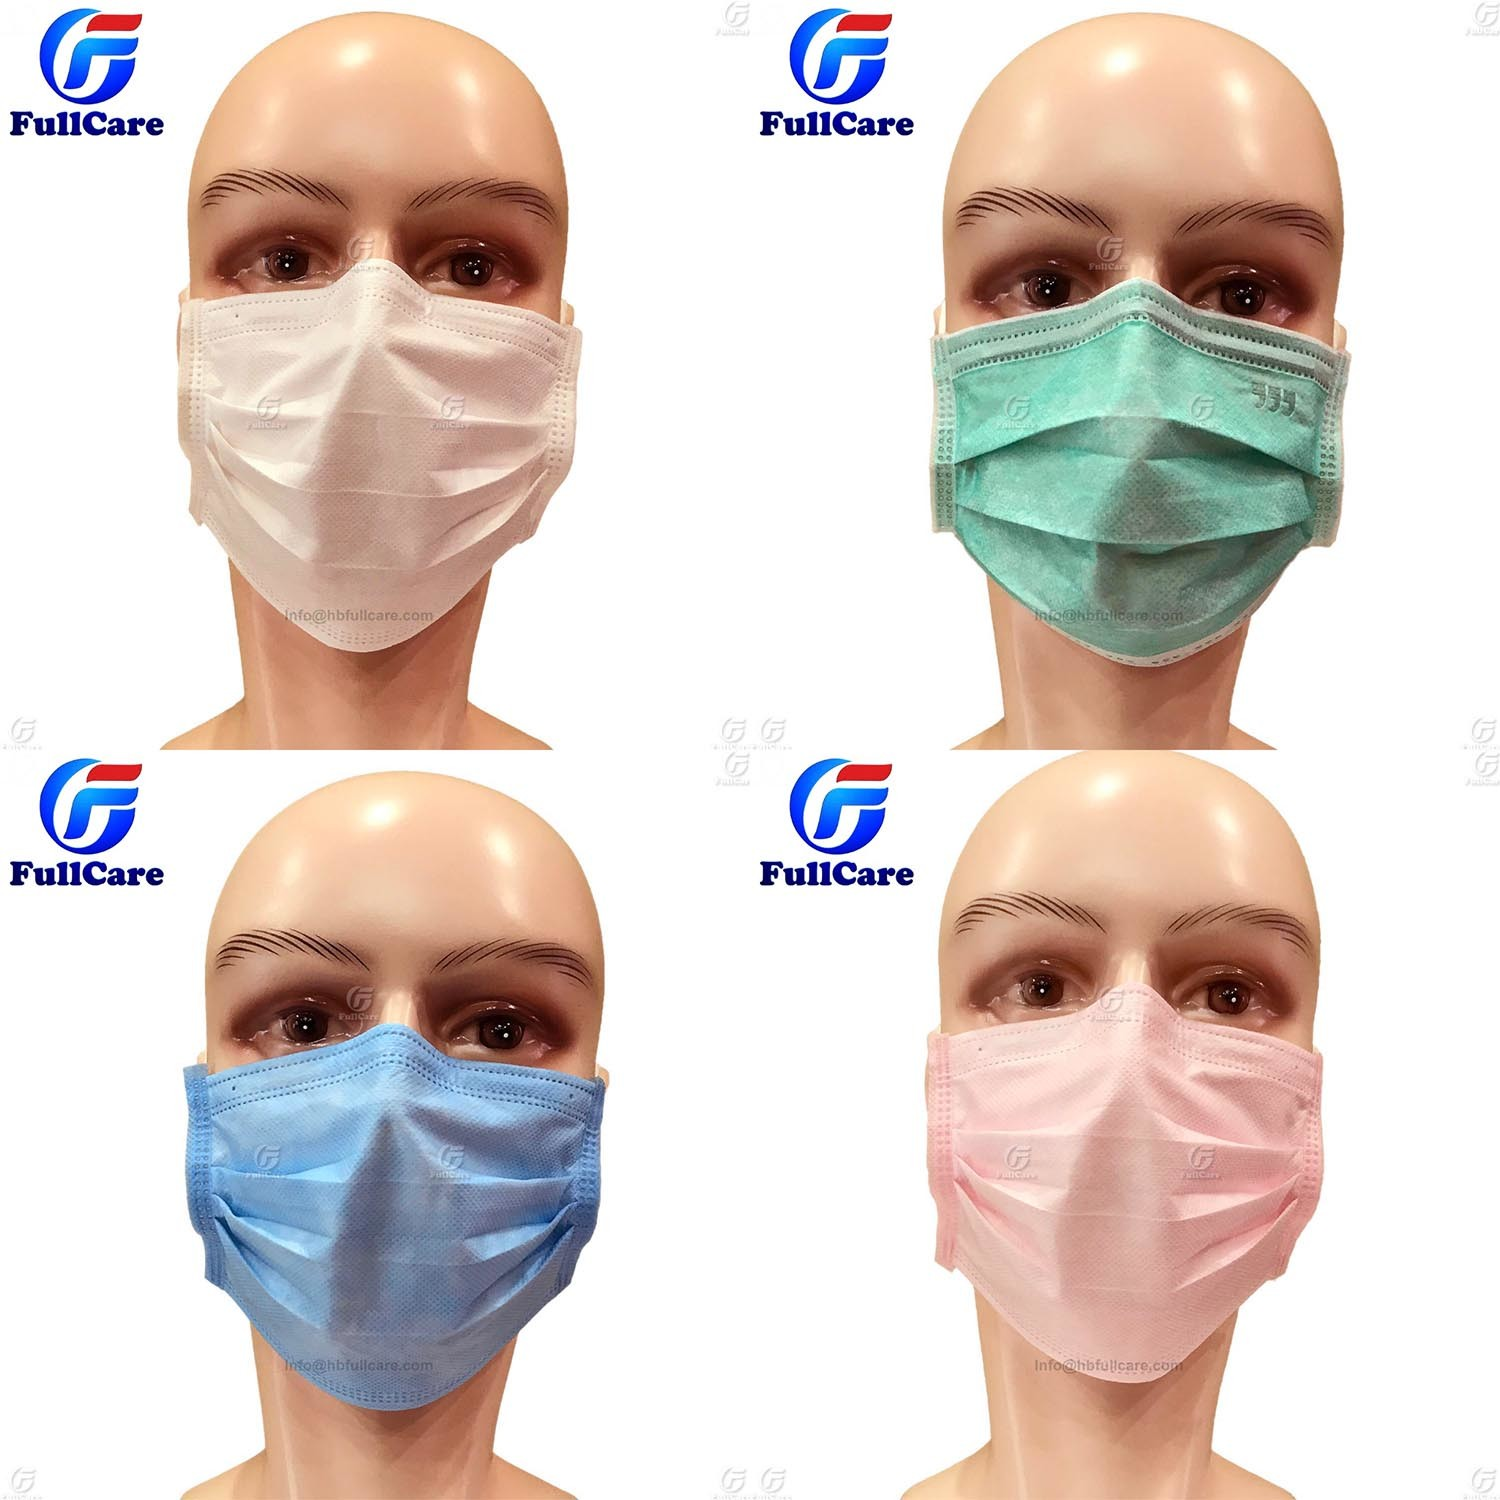 com Made-in-china amp; Mask Photos Face Products - Pictures China